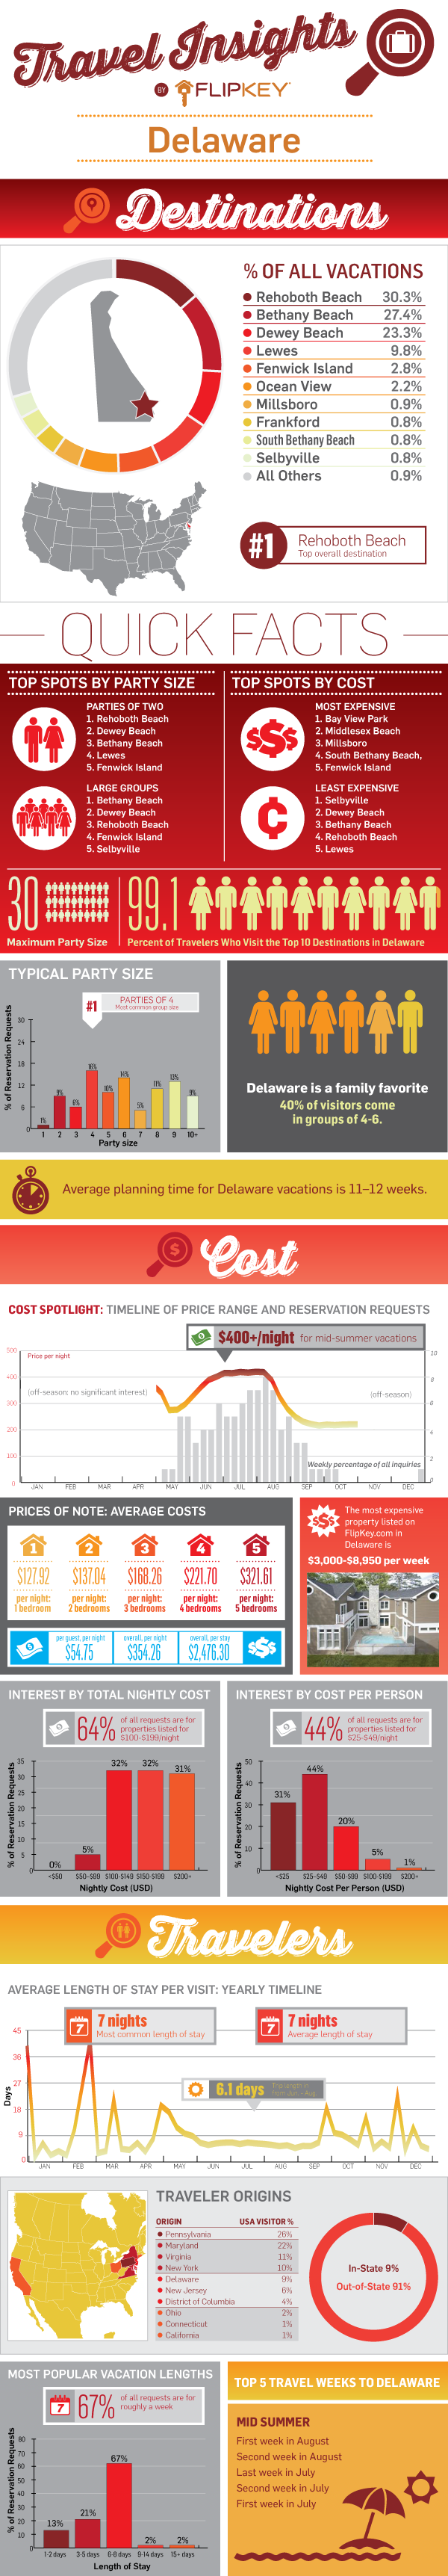 Delaware Travel Insights Infographic